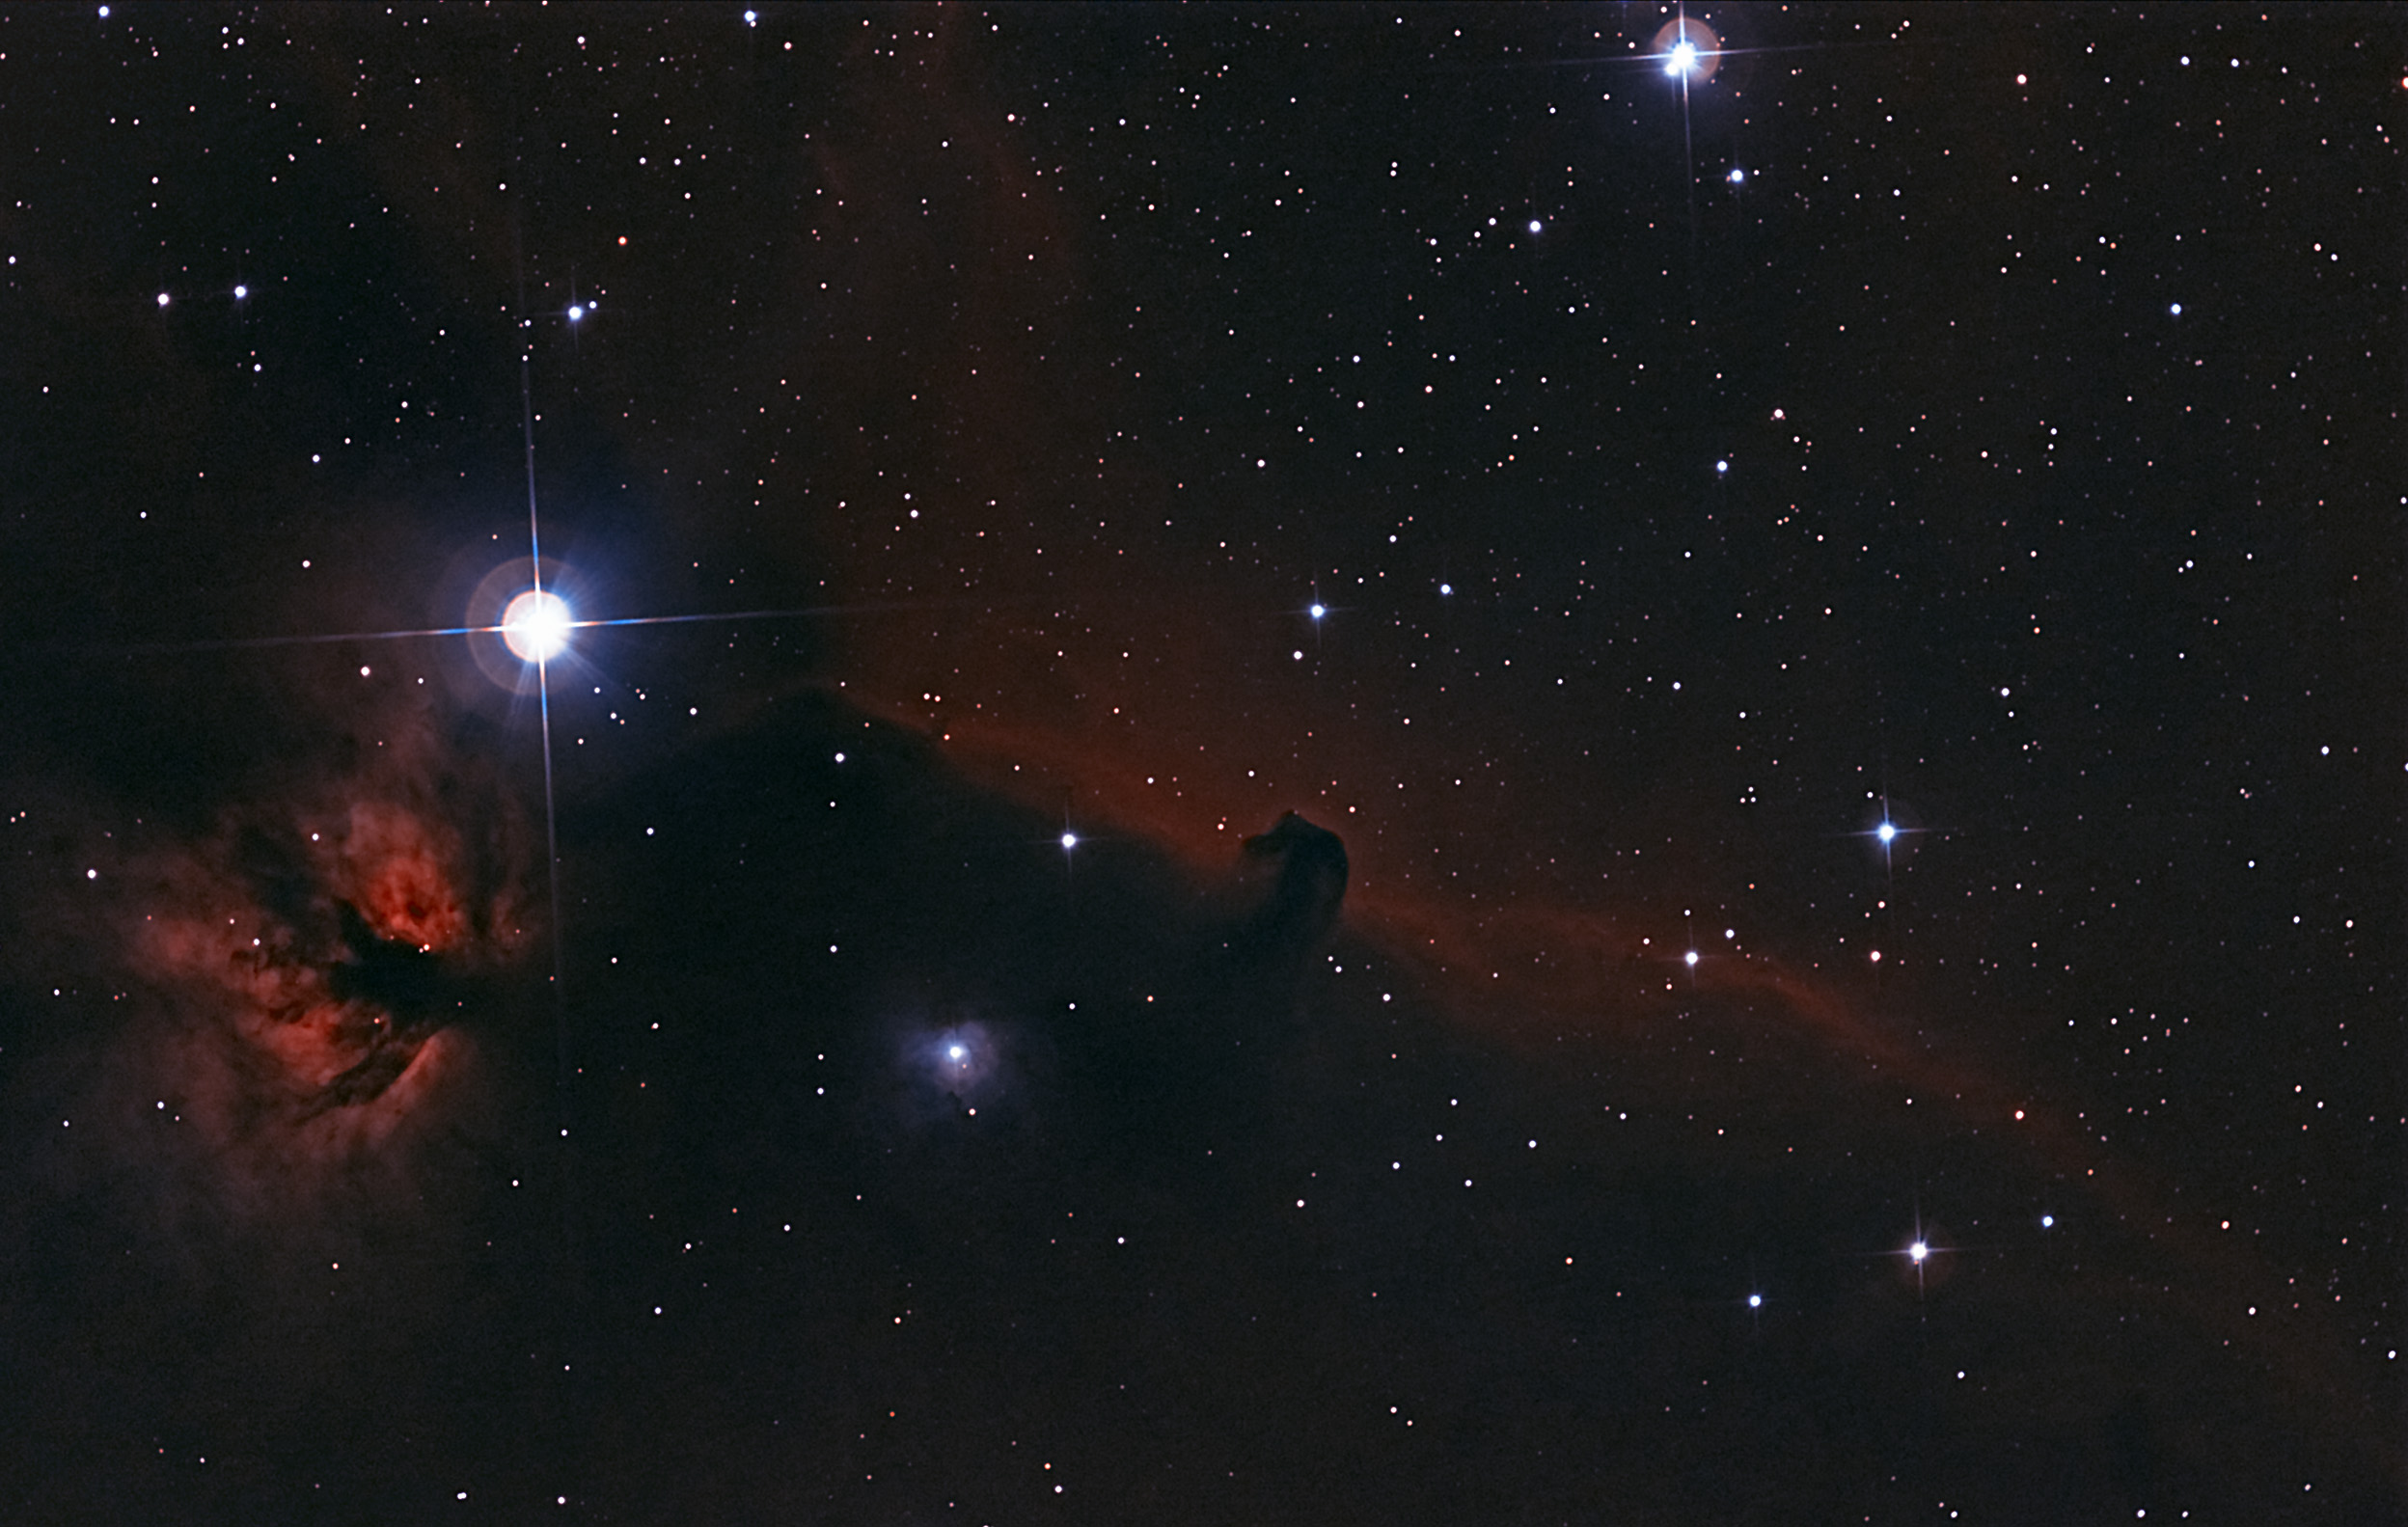 The Horsehead nebula. : space